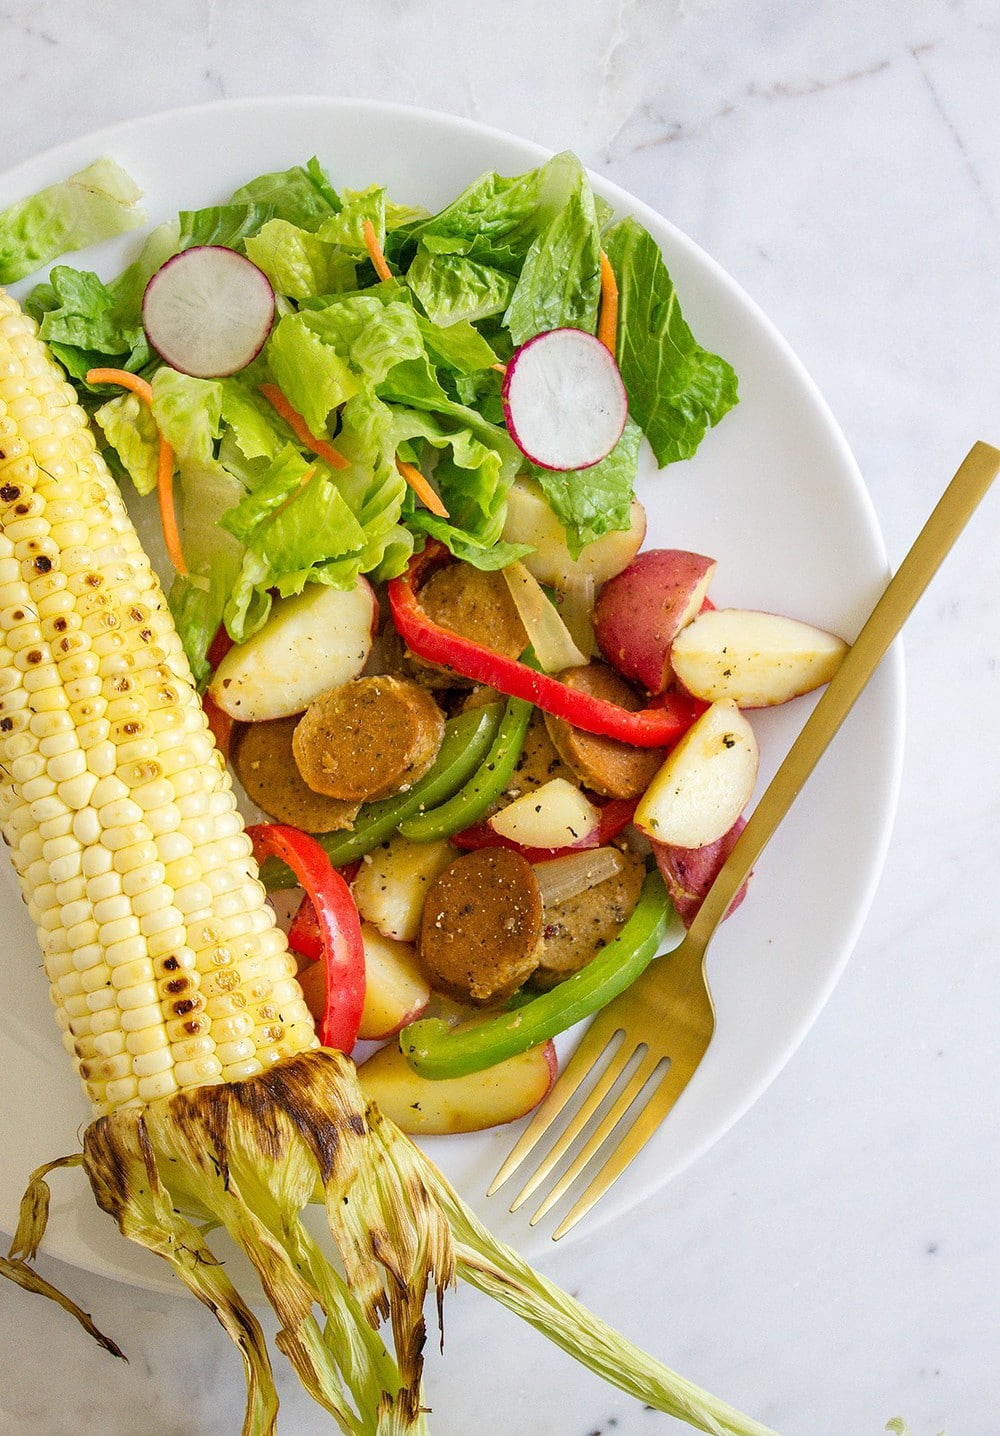 top down view of grilled corn, fresh garden salad and serving of sausage, peppers and potatoes on a white plate